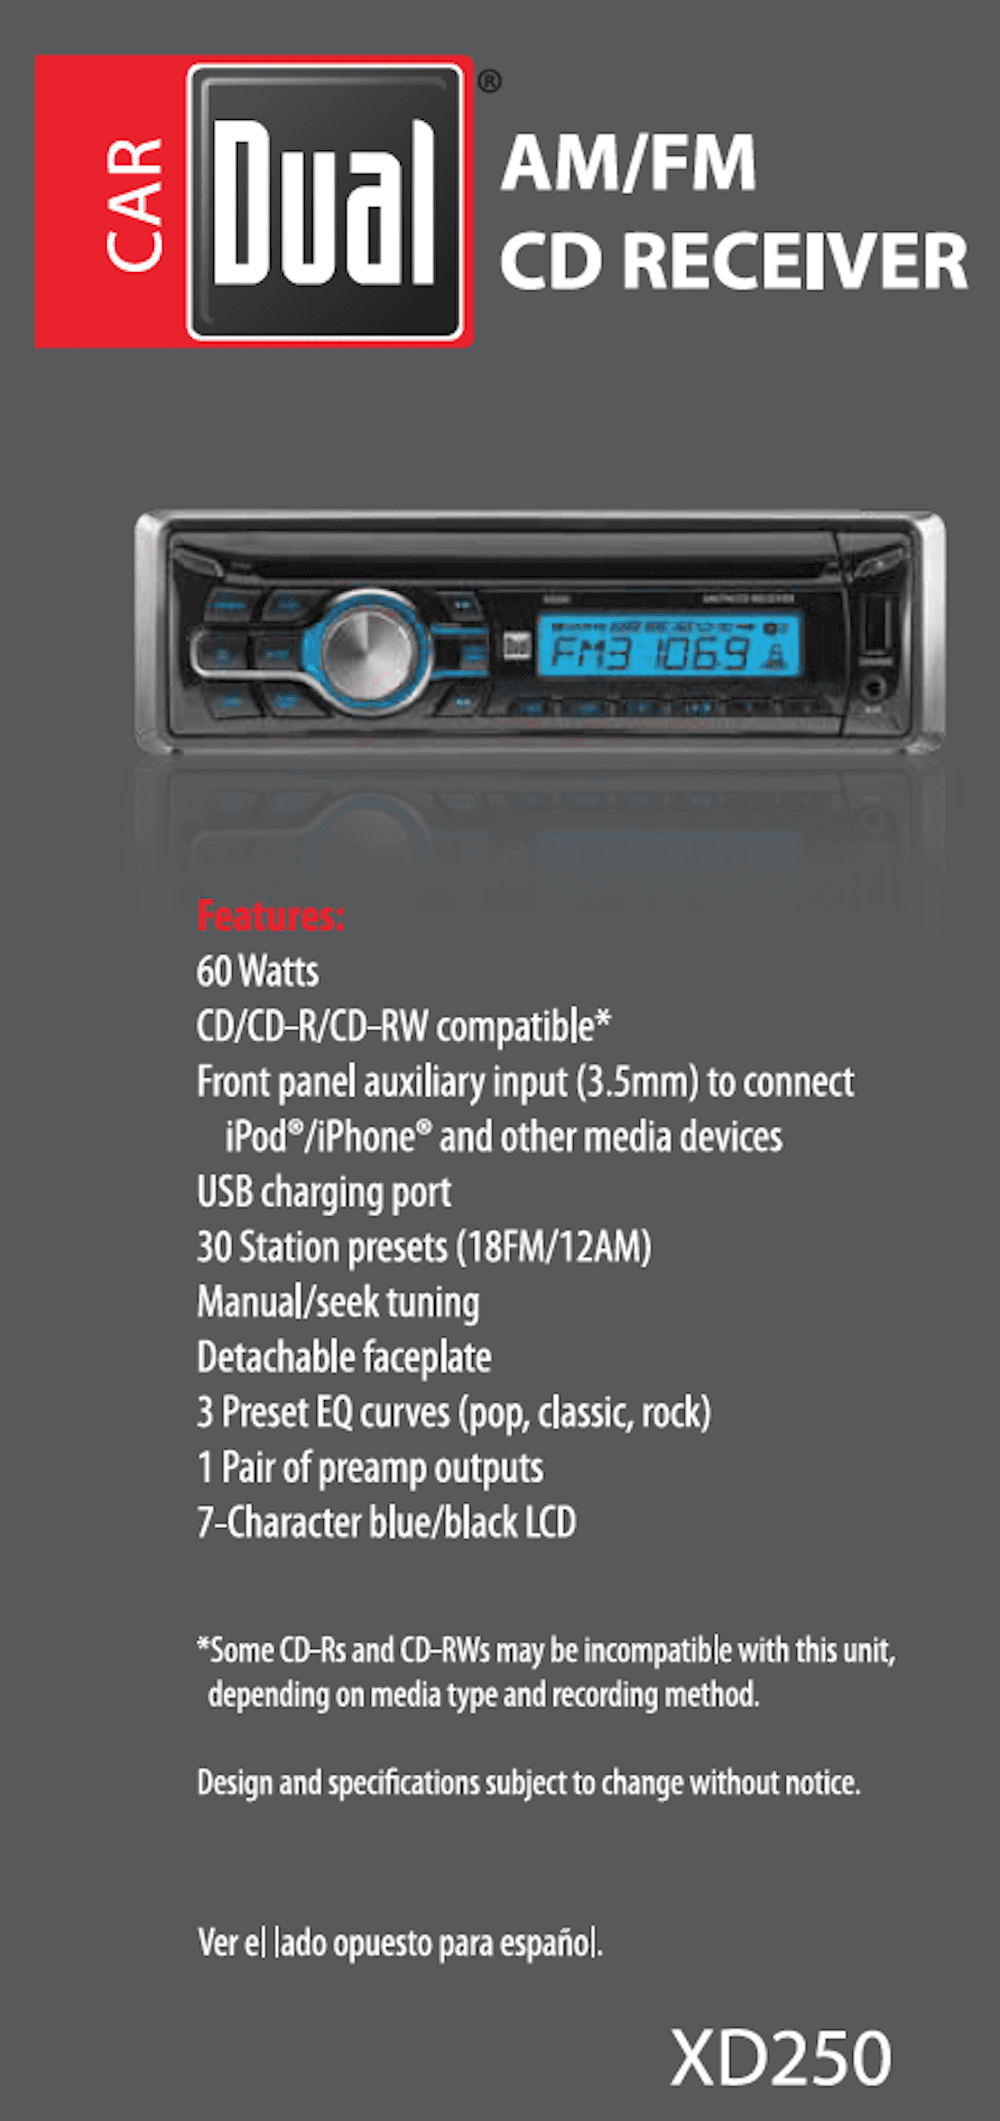 Dual Electronics Xd250 Detachable Lcd Single Din Car Stereo With Xd5250 Radio Wiring Diagram Built In Cd Usb Mp3 Wma Player